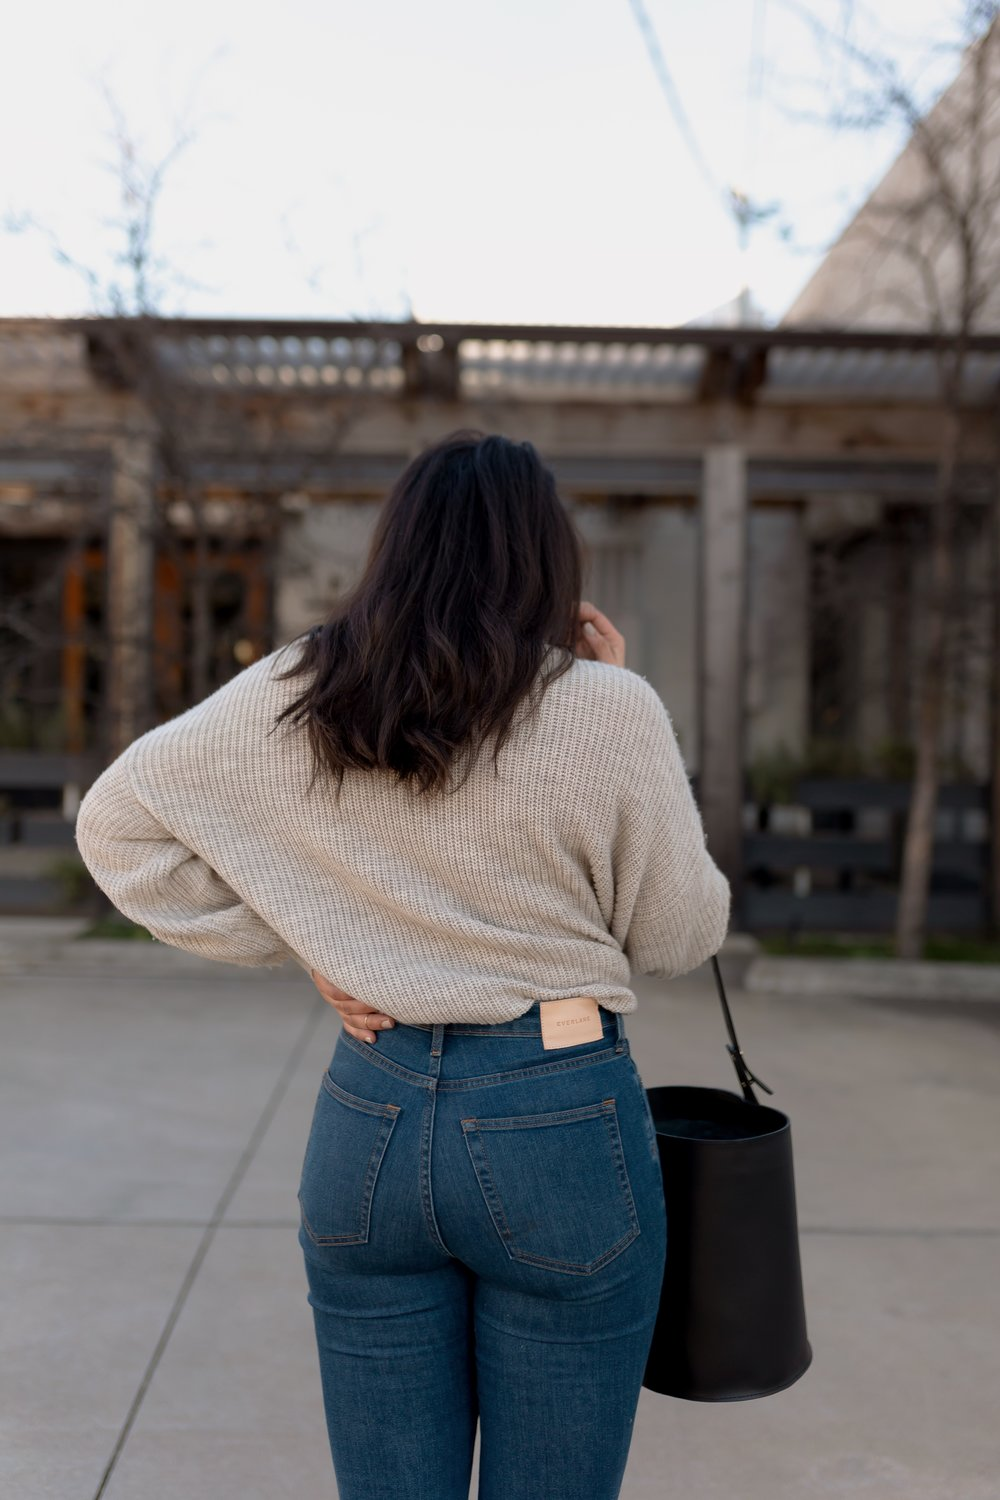 A Cozy Winter Outfit I've Been Wearing On Repeat | Aleah Eileen